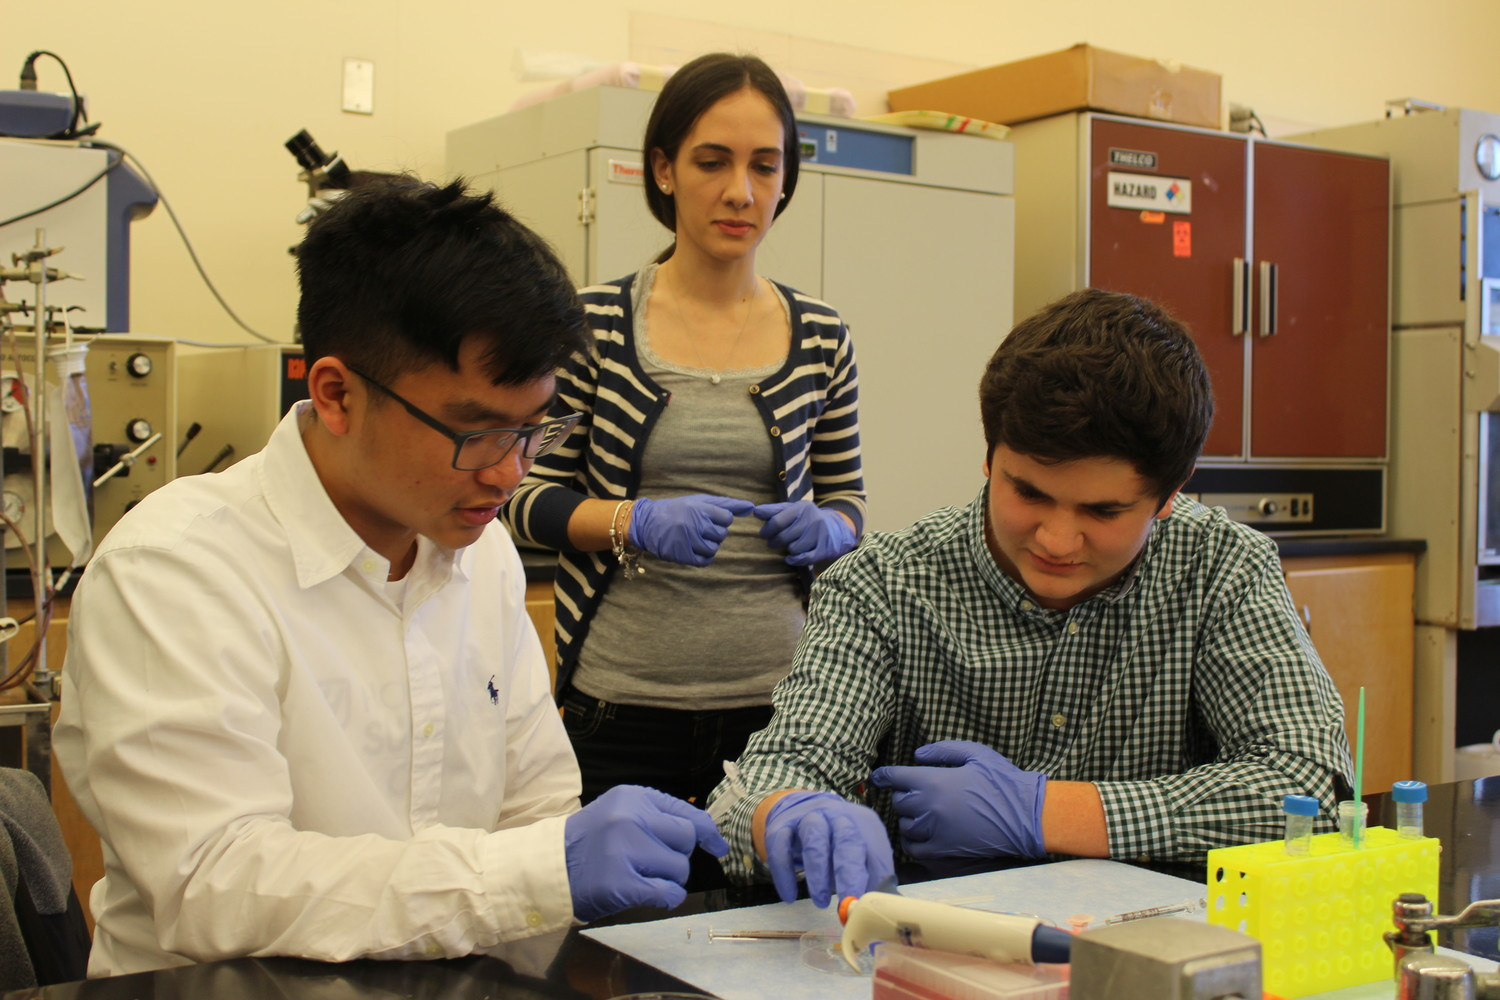 Hugh Cheun, left, and Andrew Brinton, sophomores at Kennedy High School, worked with LIU Post undergraduate Susanna Mirabelli on an experiment on clinical biology.